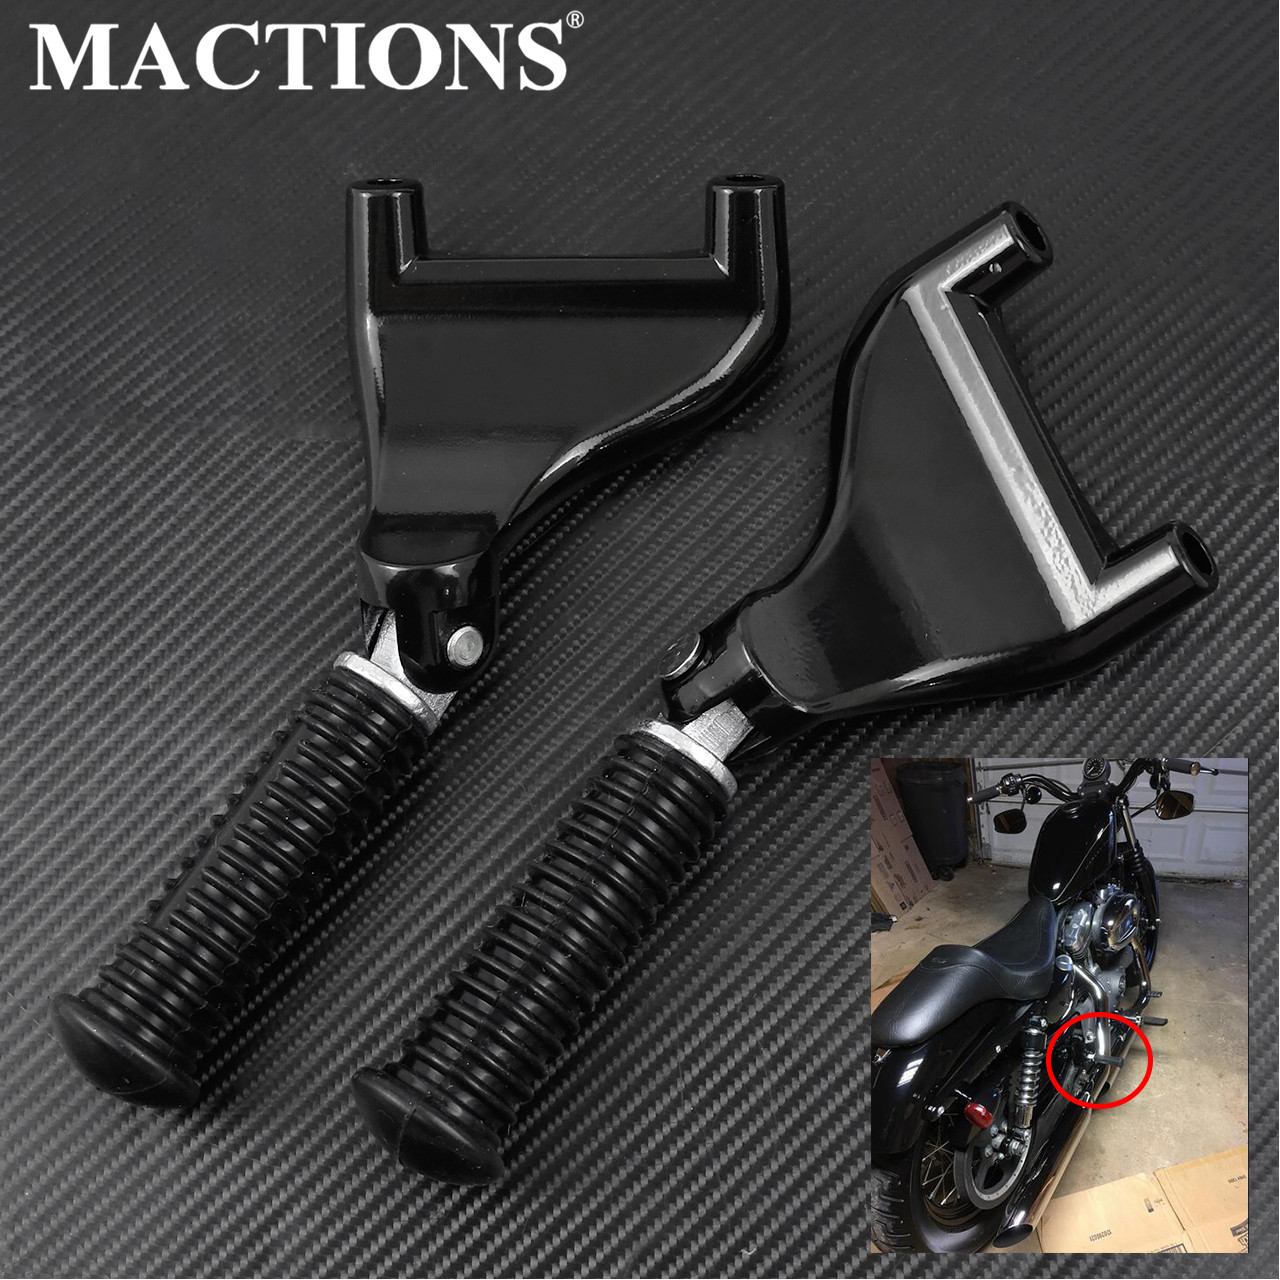 Motorcycle Black Rear Passenger Footpeg W/ Mount Screw For Harley Sportster XL 883 1200 48 XL1200X 72 XL1200V 2004-2013